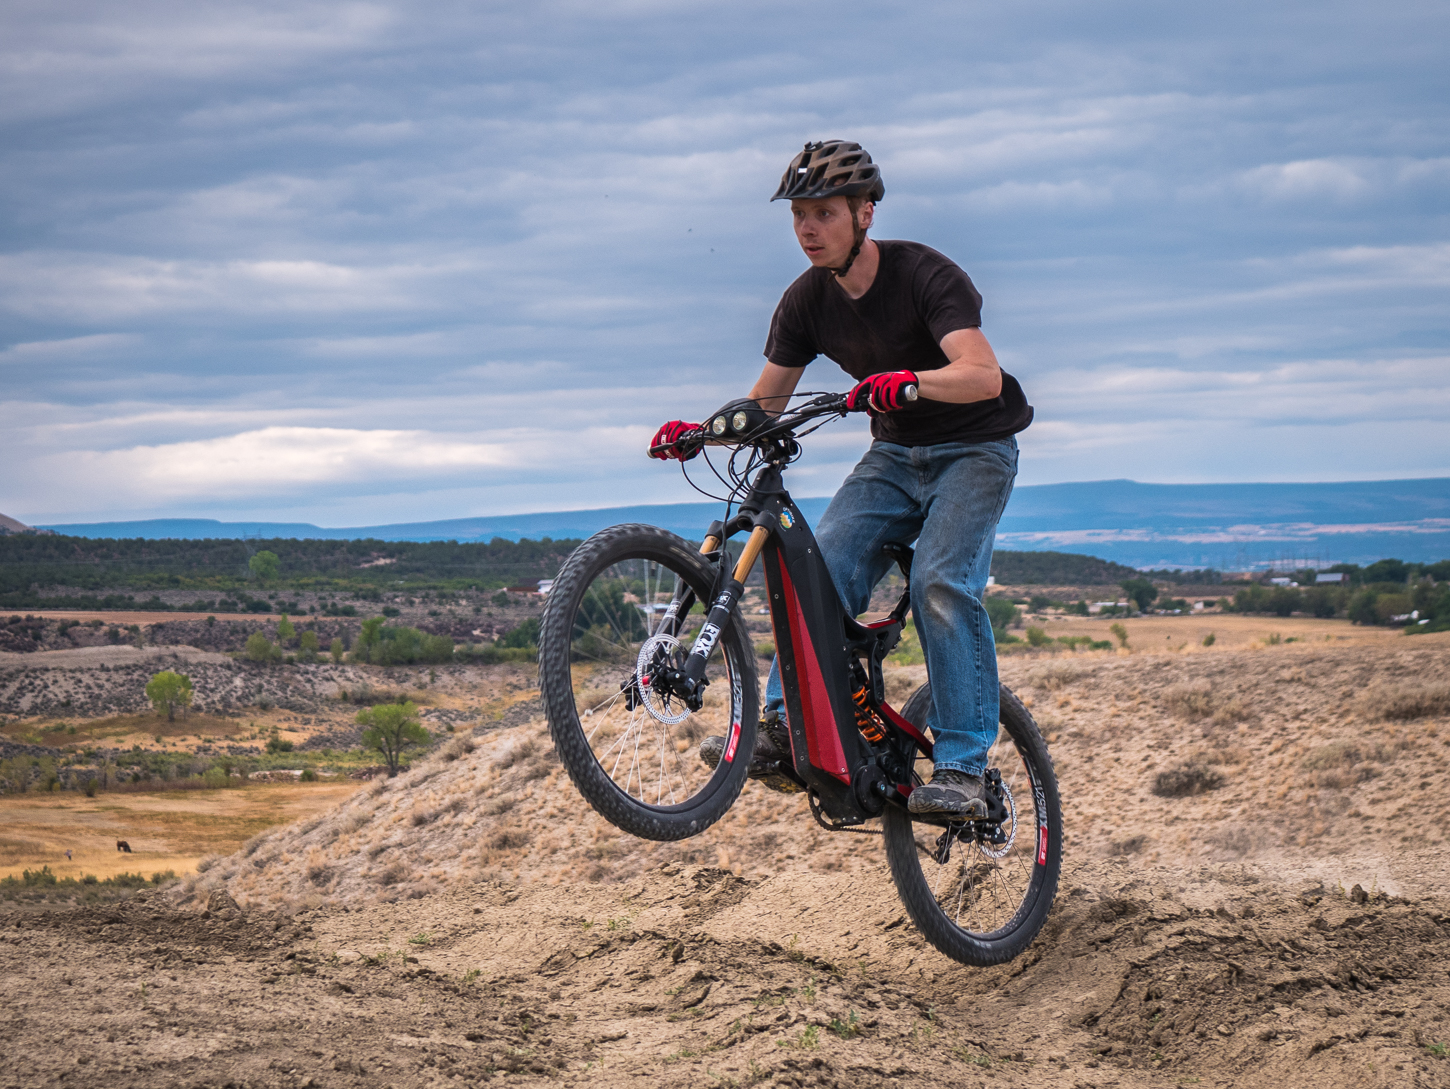 The Optibike R15C has plenty of torque to get you up and over any terrain